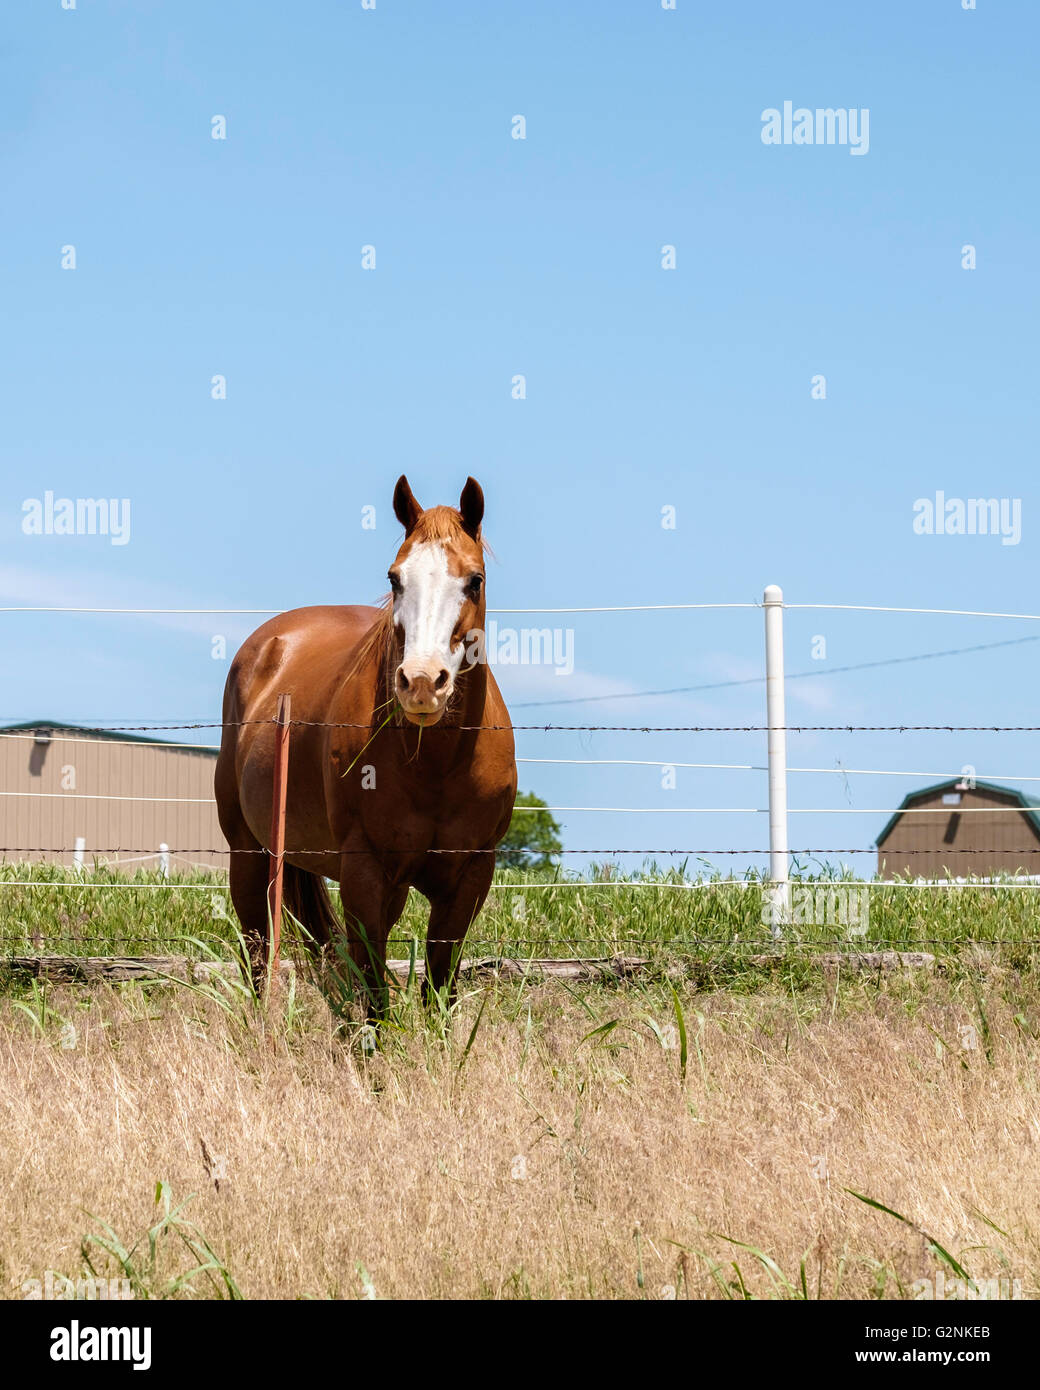 A sorrel gelding quarterhorse looks over a barbed wire fence from a pasture in Oklahoma, USA. - Stock Image